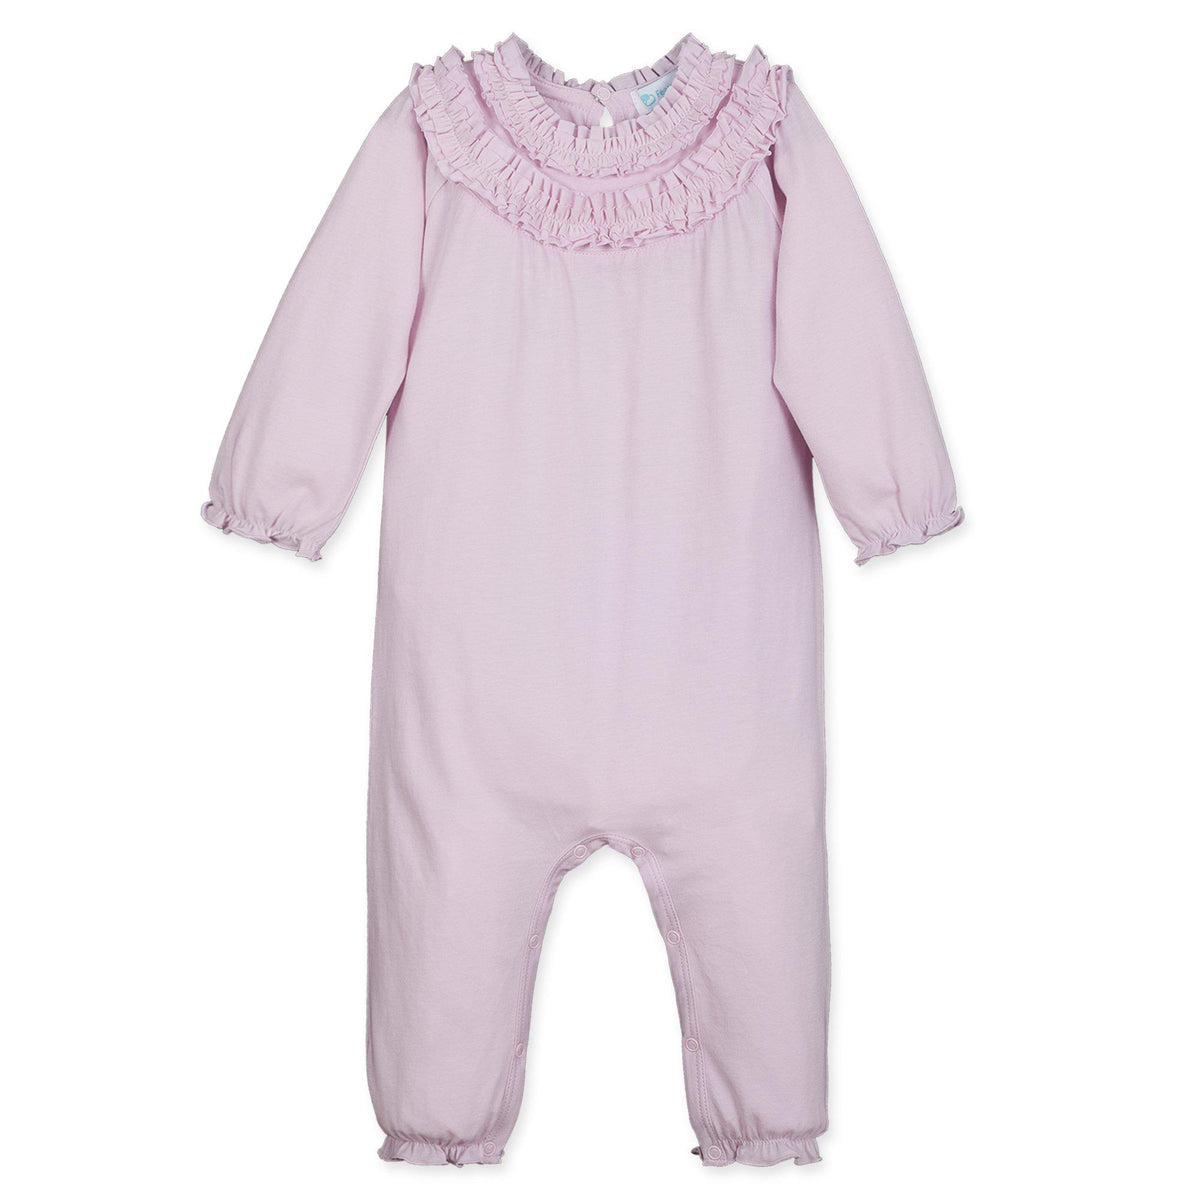 Double-Ruffle Cover-All ~ Soft Pink-Long Rompers-Feather Baby-Kissy-Pima-Organic-Gift-Free_Shipping